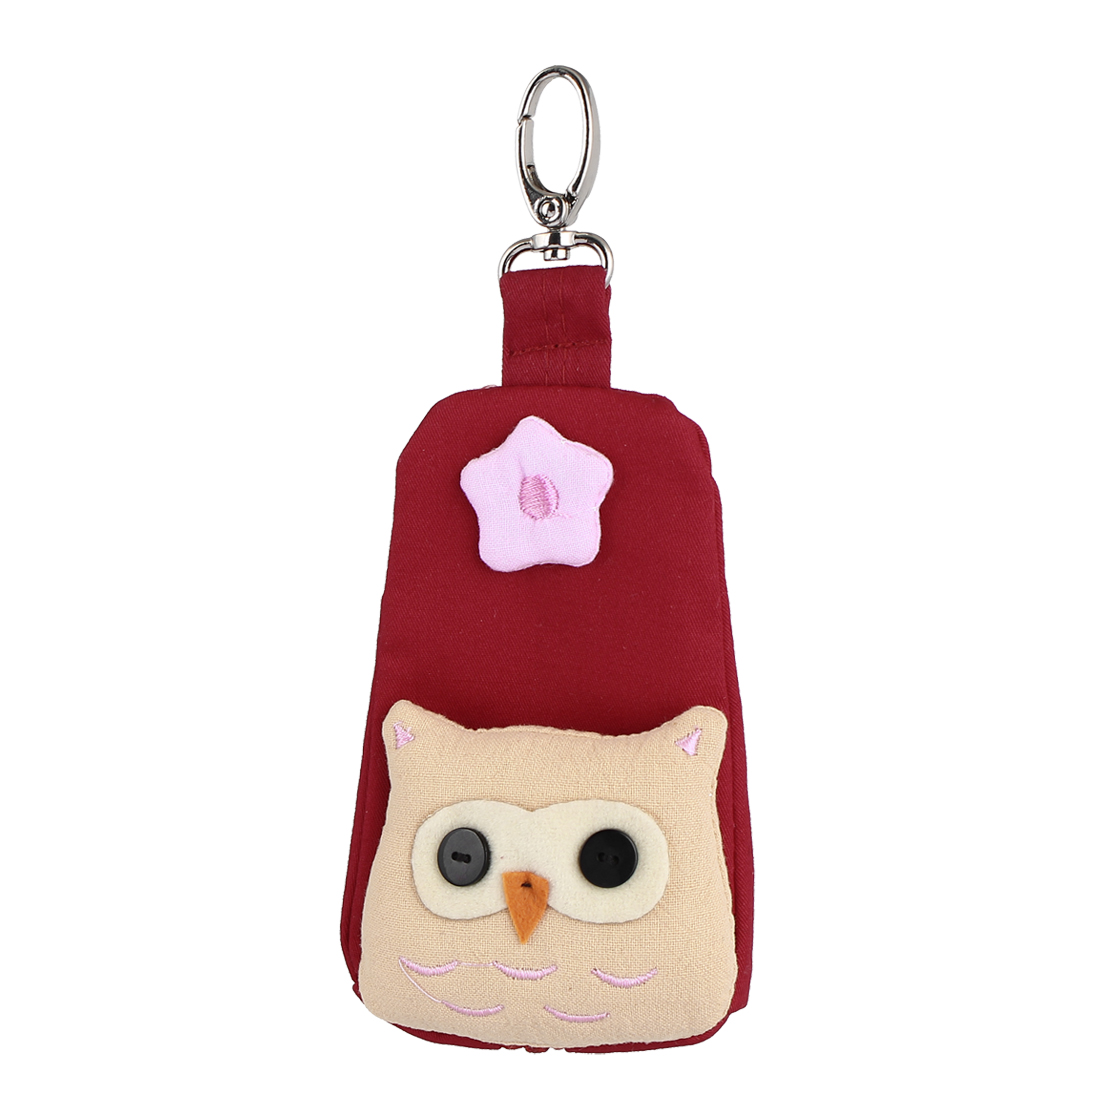 Lobster Clasp Zip Up Cloth Owl Head Decor Key Coin Holder Bag Purse Wallet Red